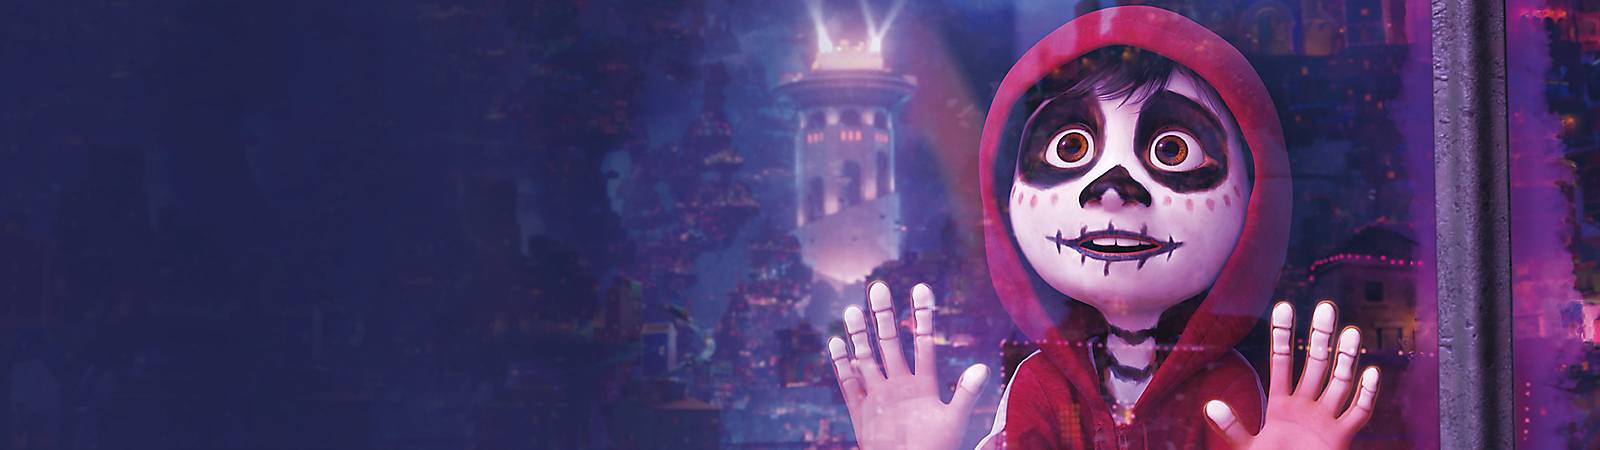 Background image of Coco